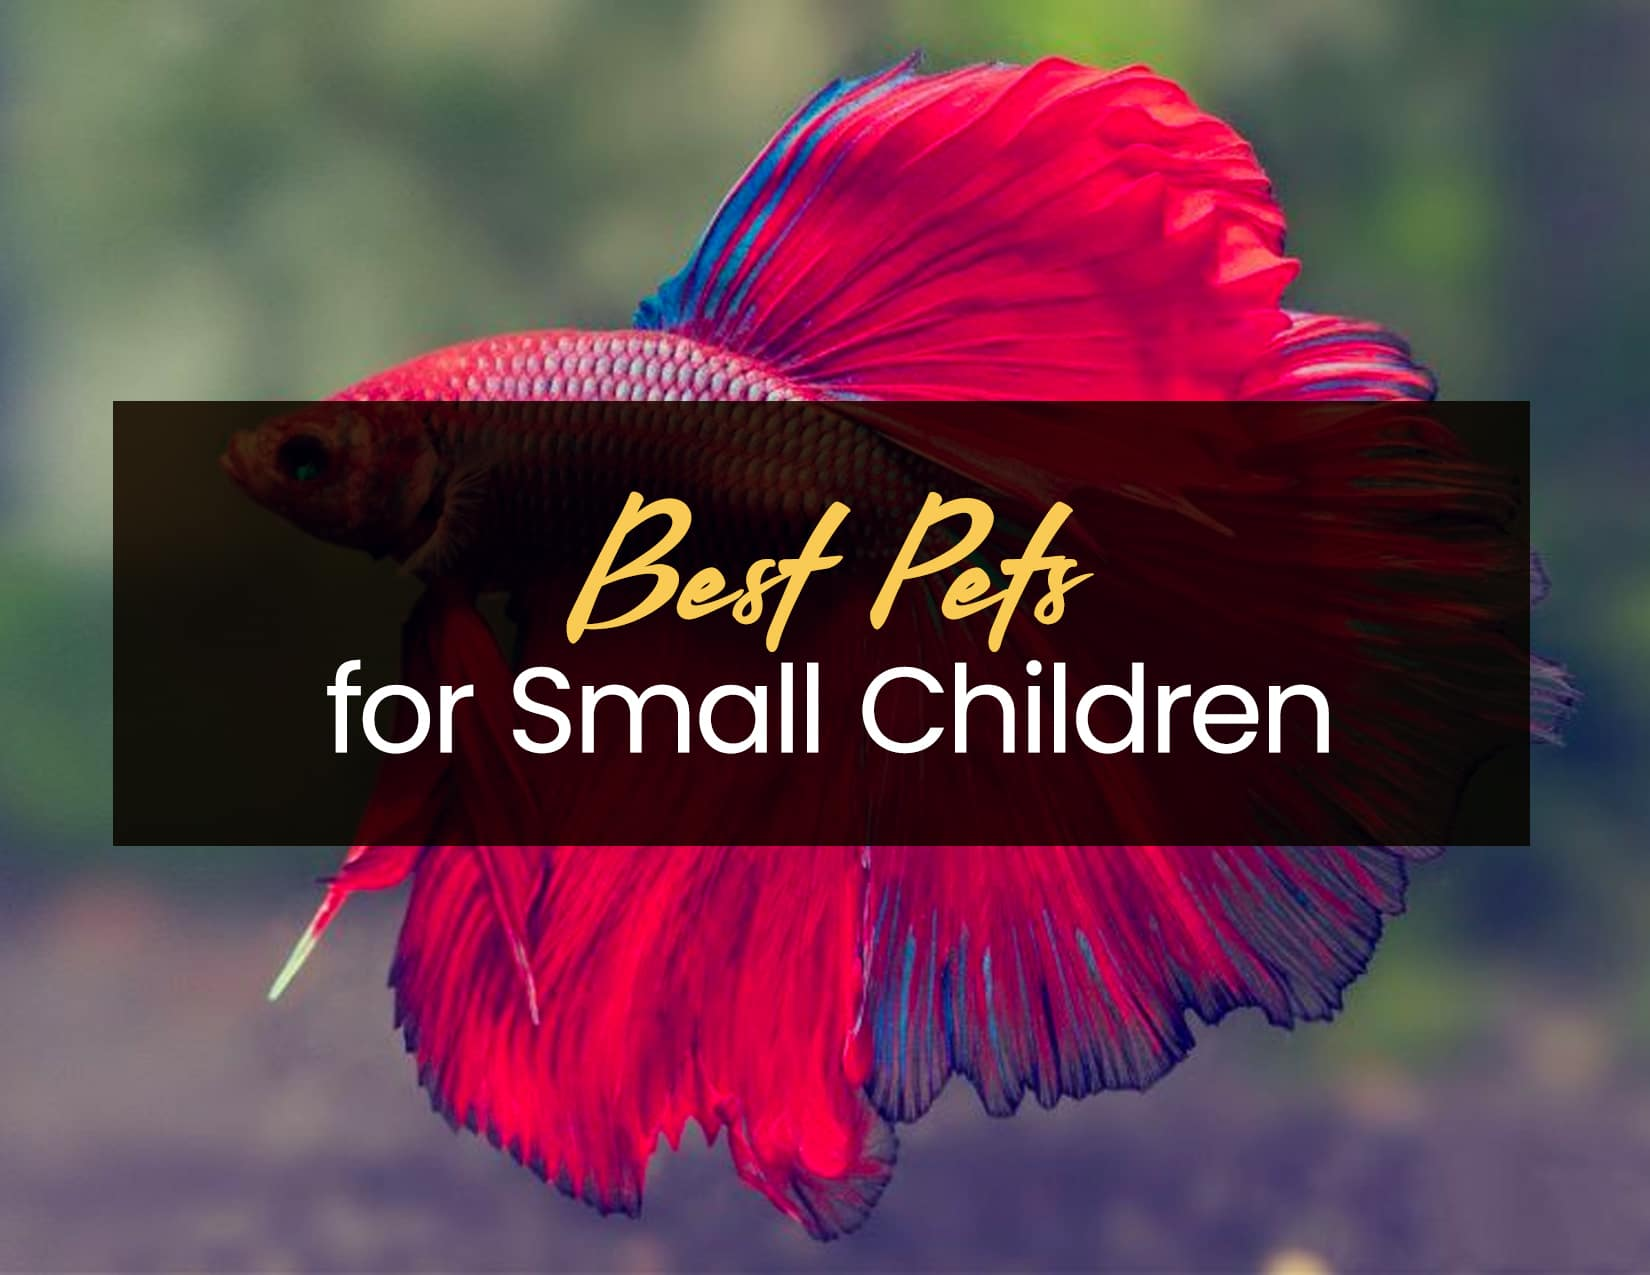 Best Pets for Small Children